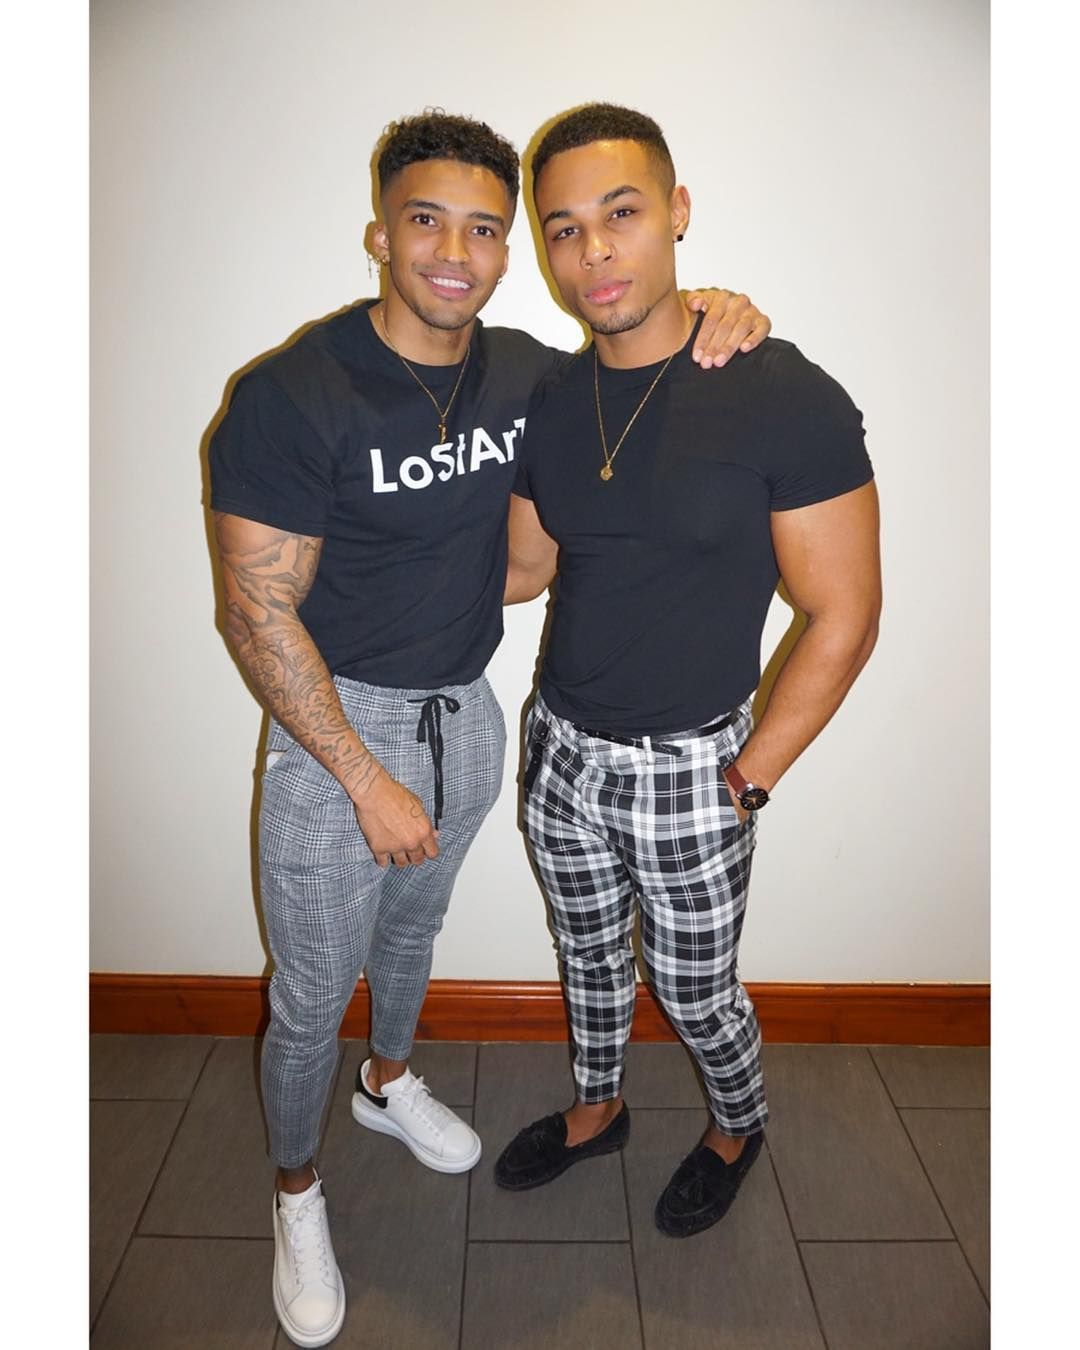 Image may contain: Love Island 2019 Instagrams, Love Island, Michael Griffiths, 2019, Callum, Ibiza Weekender, cast, followers, social media, line up, Running Shoe, Man, Pants, Human, Person, Footwear, Shoe, Apparel, Clothing